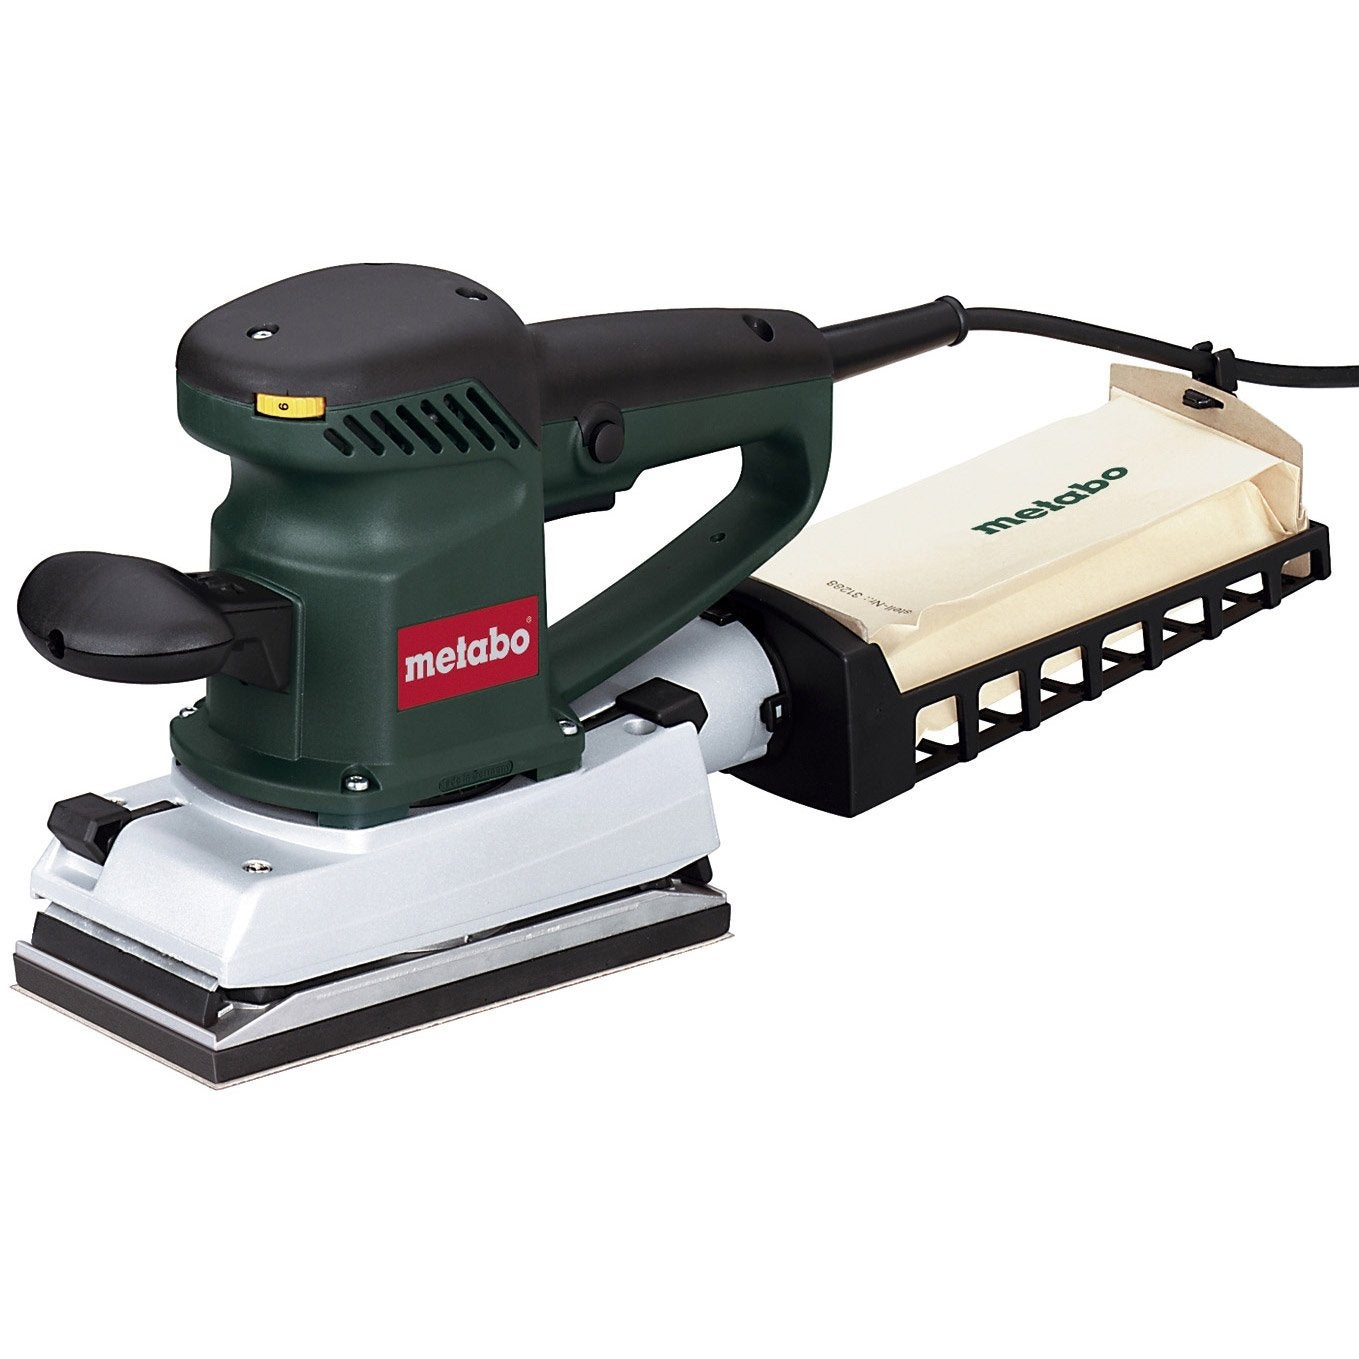 Ponceuse vibrante metabo sre357 350 w leroy merlin - Ponceuse leroy merlin ...